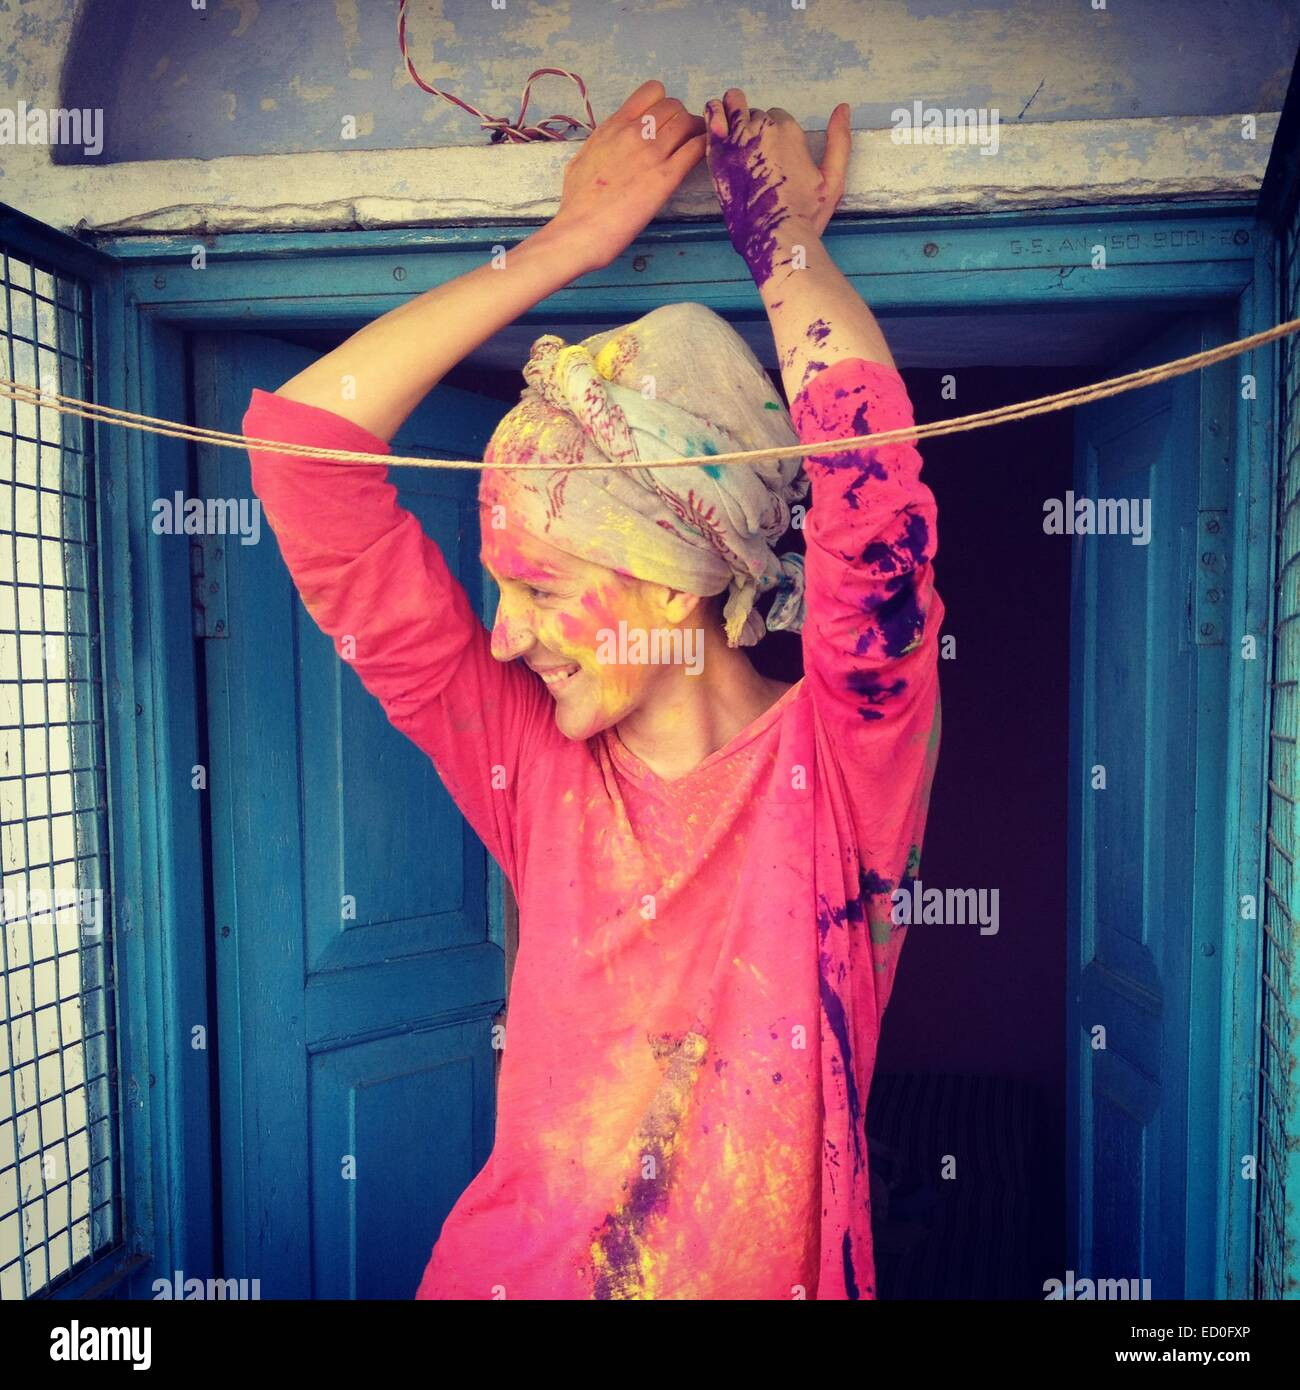 Young woman with headscarf and painted face leaning against blue door - Stock Image